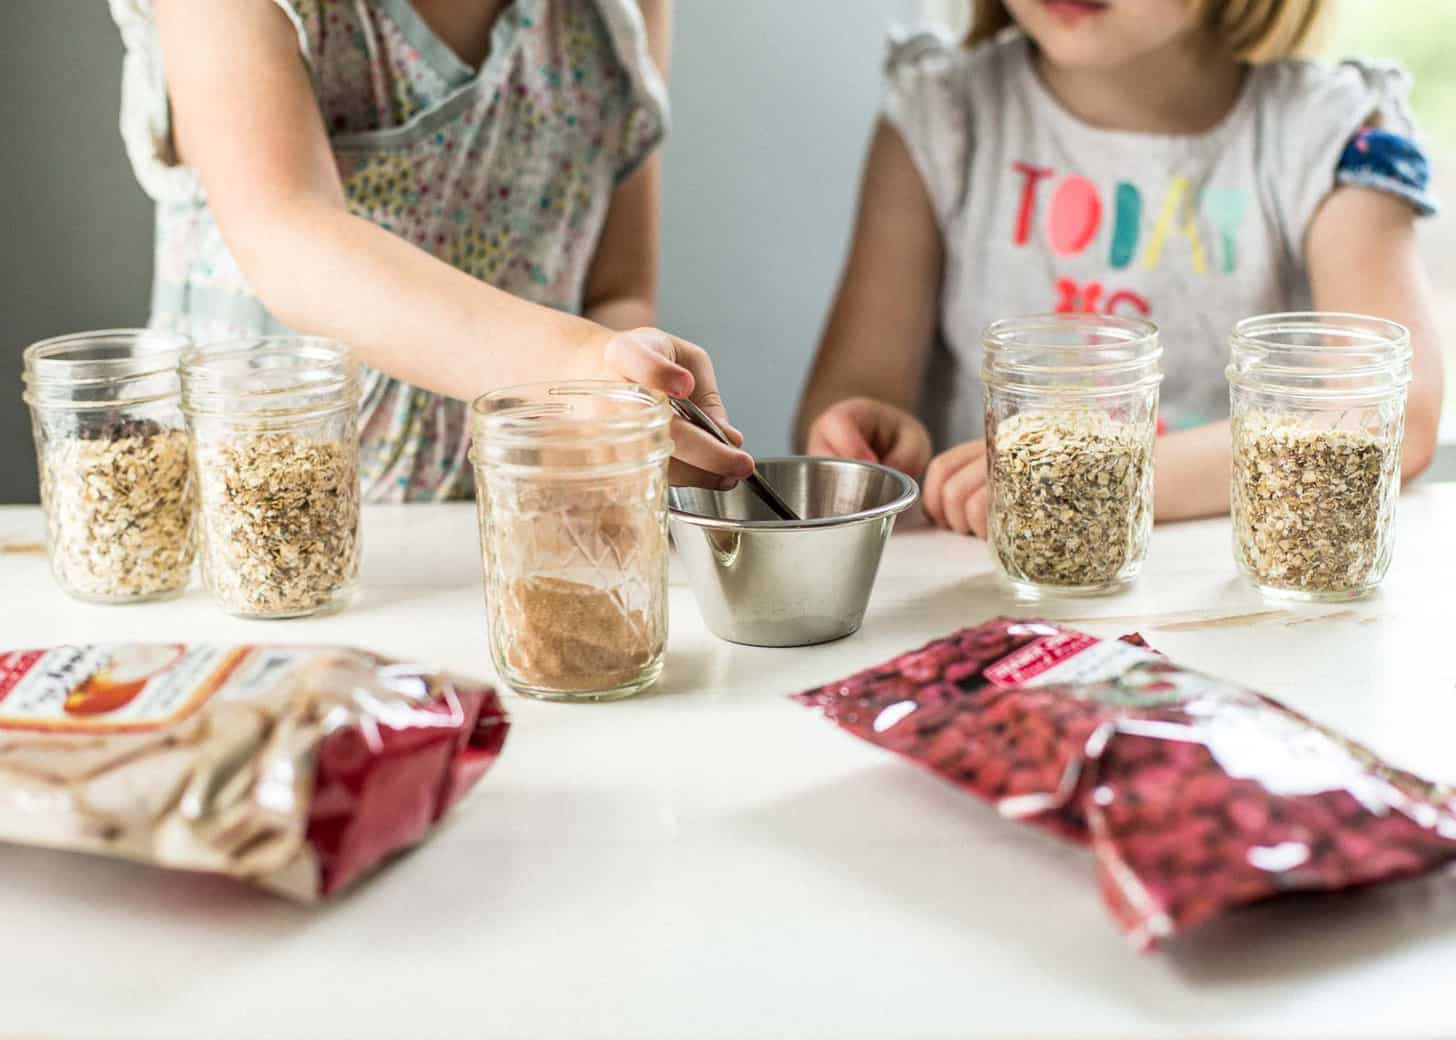 little girls add toppings to their oatmeal